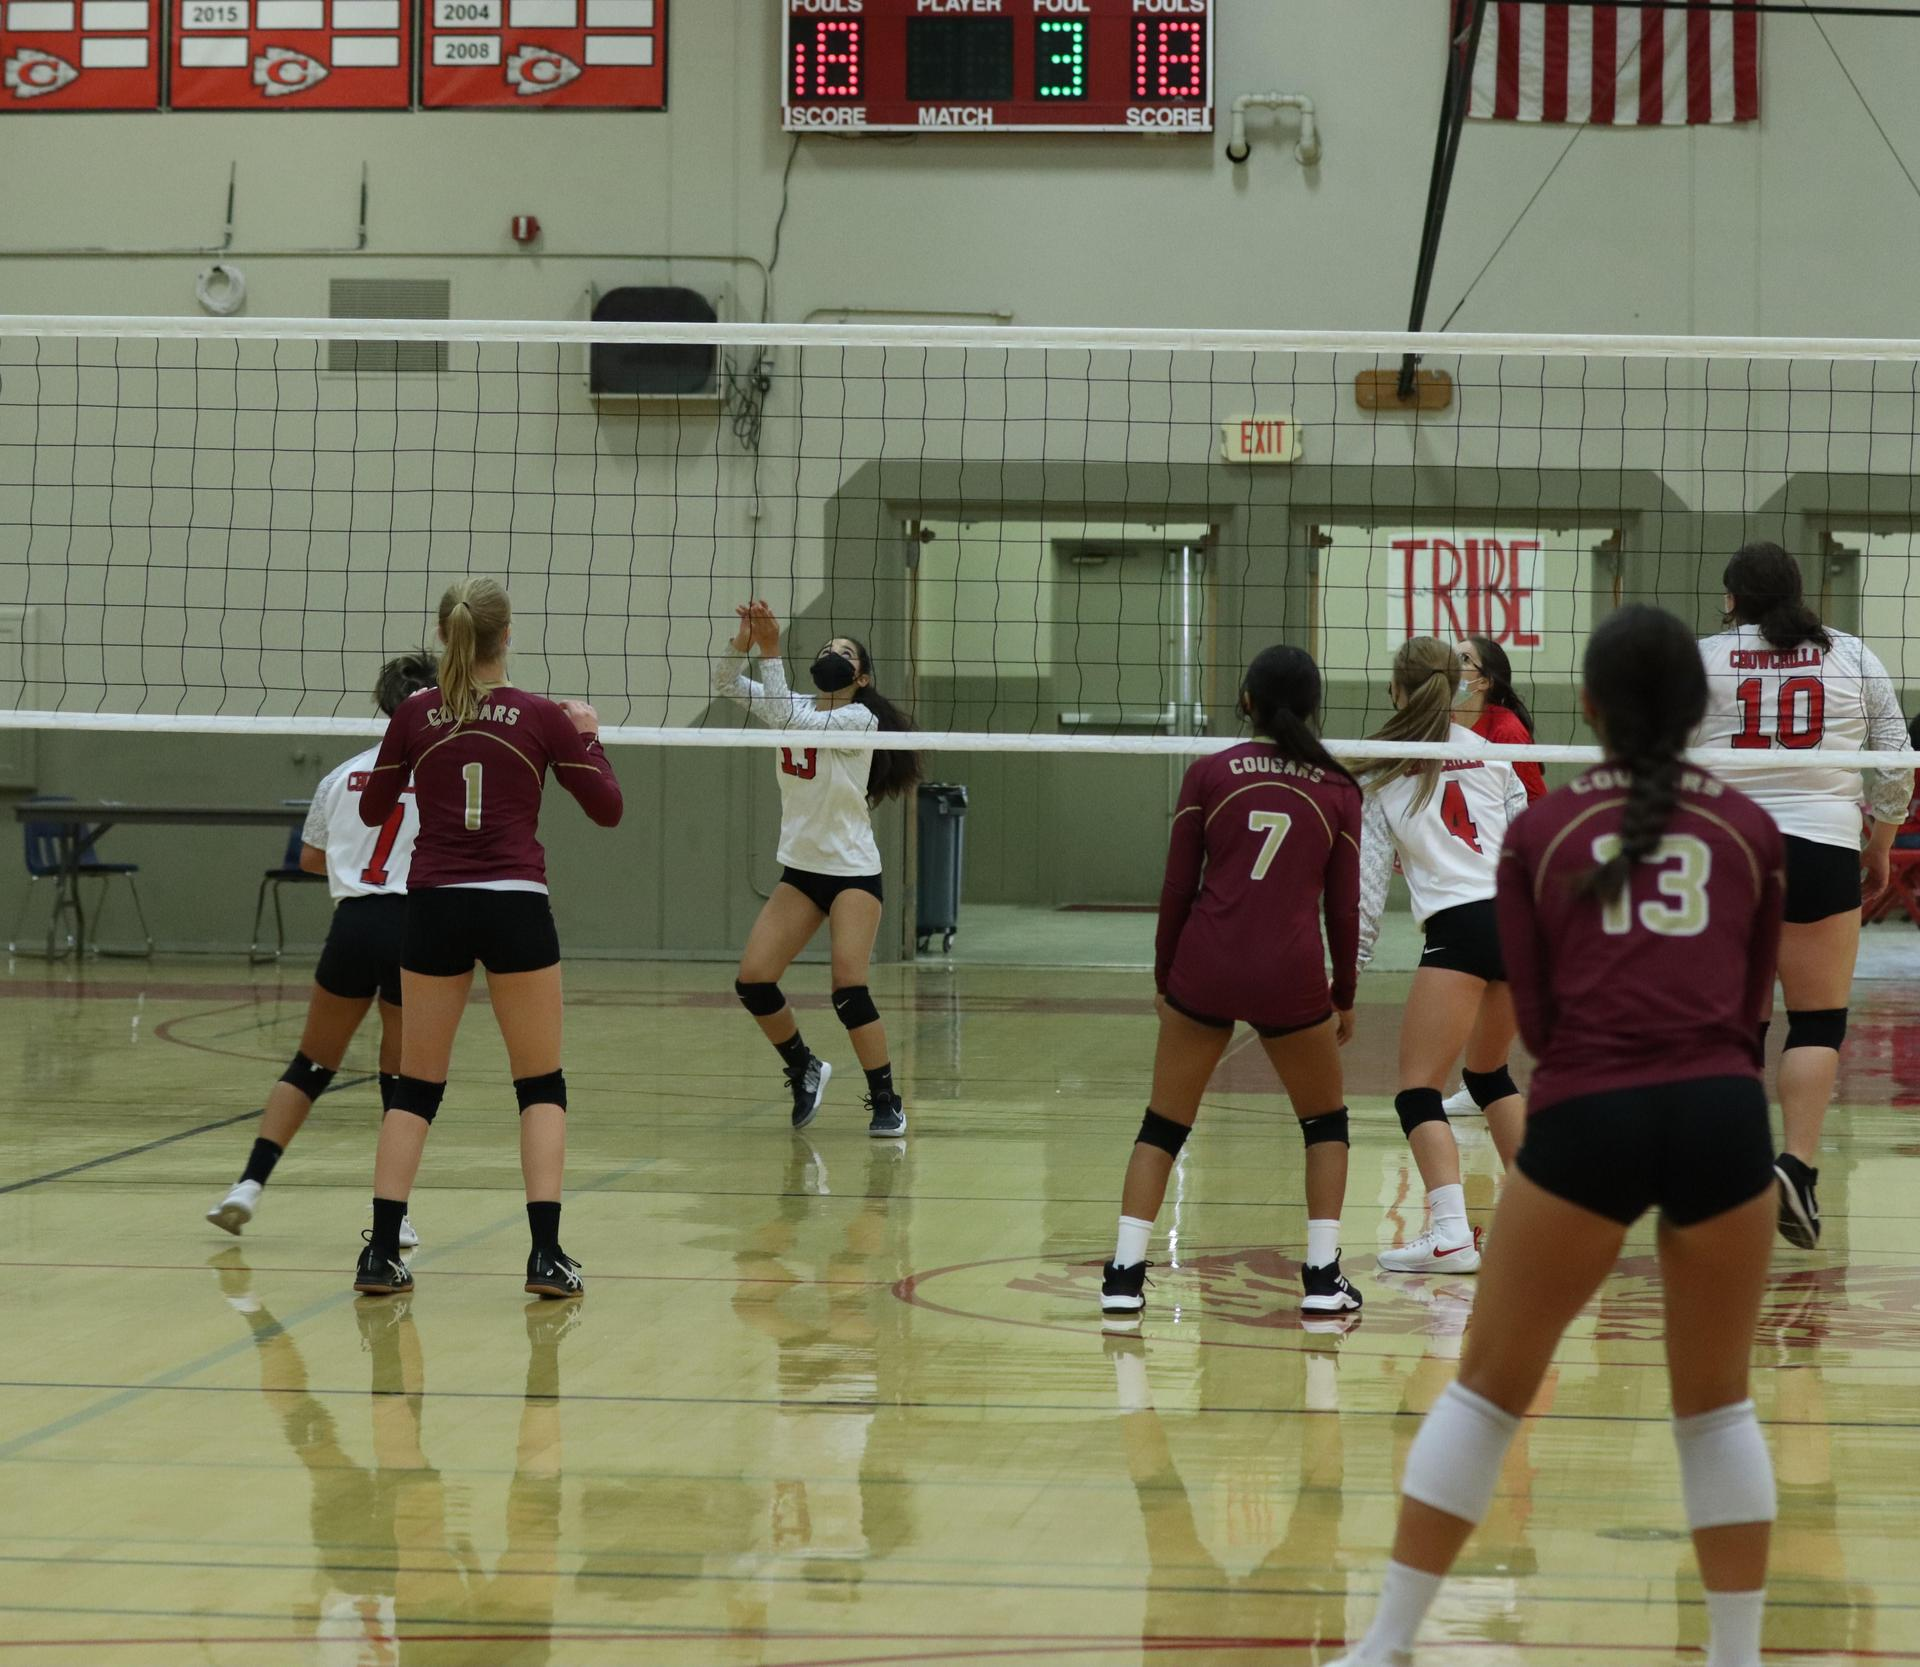 JV Girls playing volleyball against Golden Valley